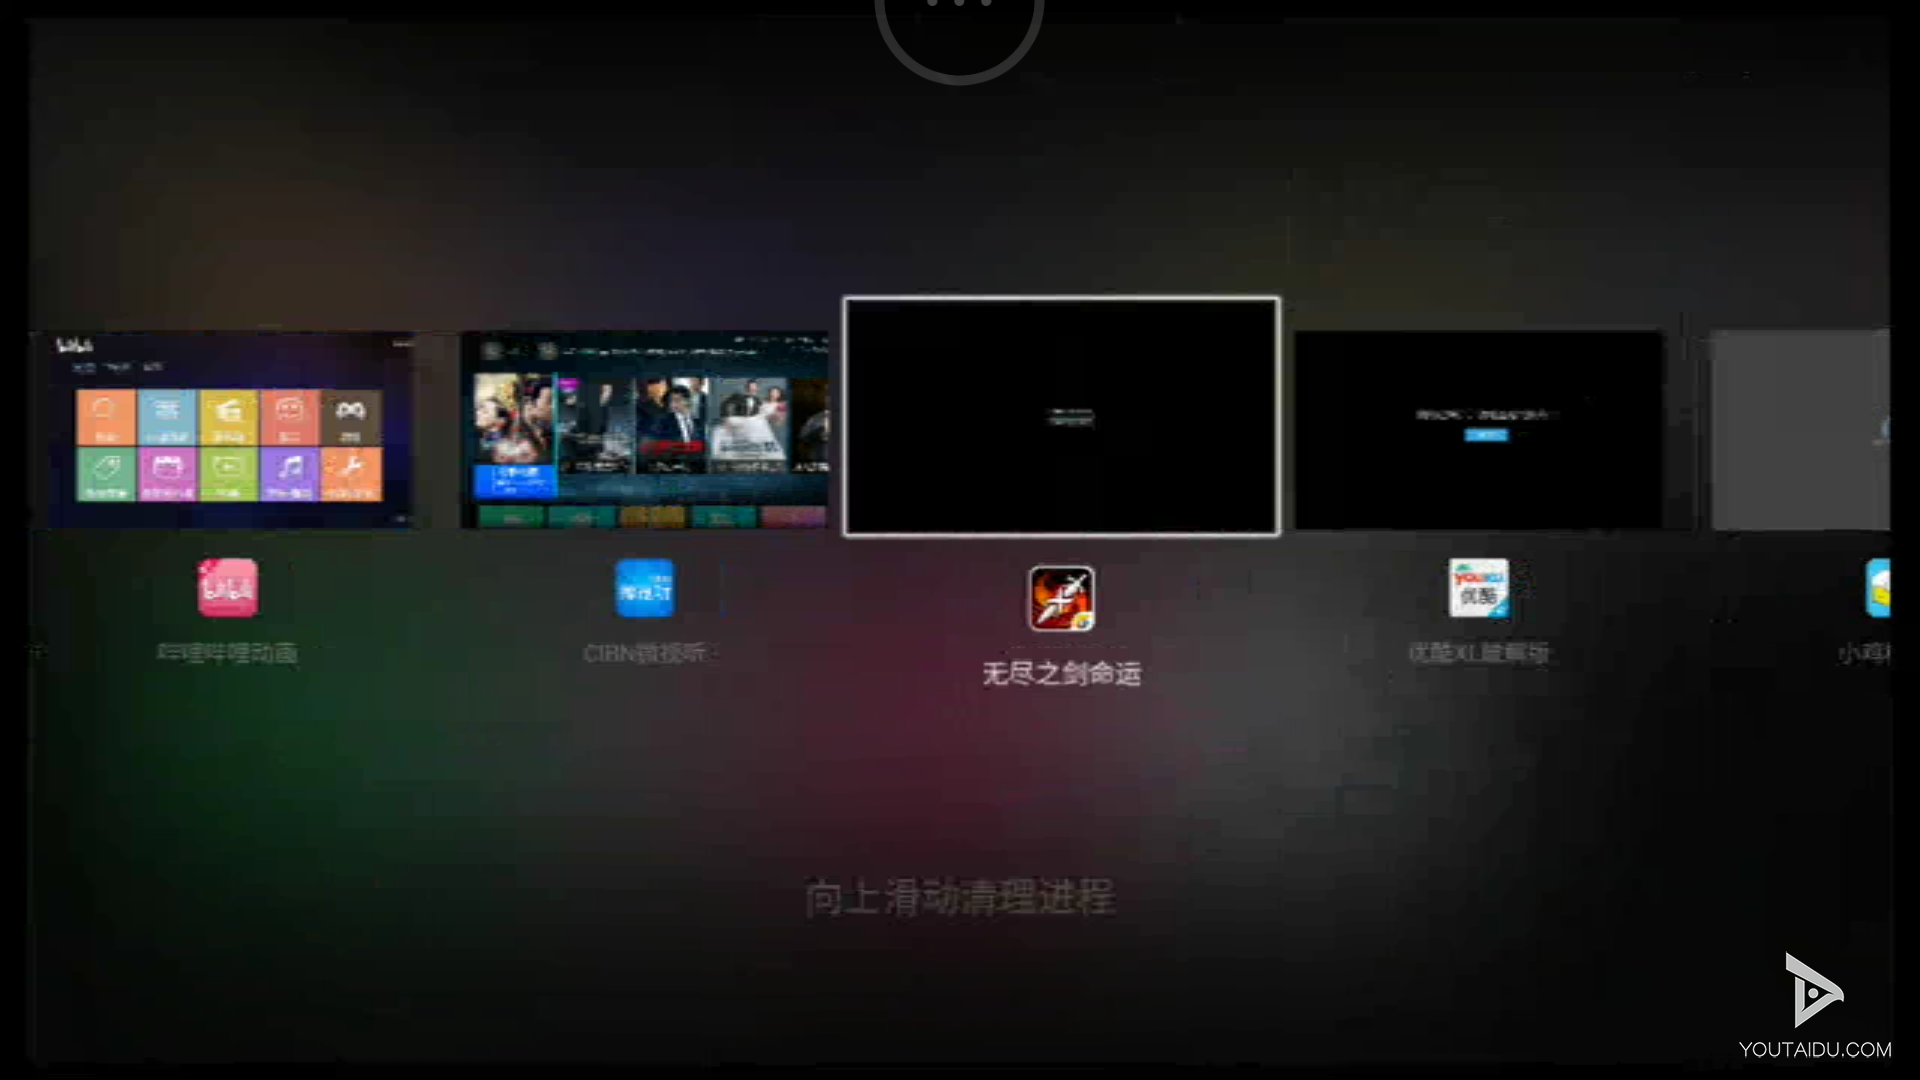 Screenshot_2016-11-18-14-46-57_com.tencent.gamestation.control.png